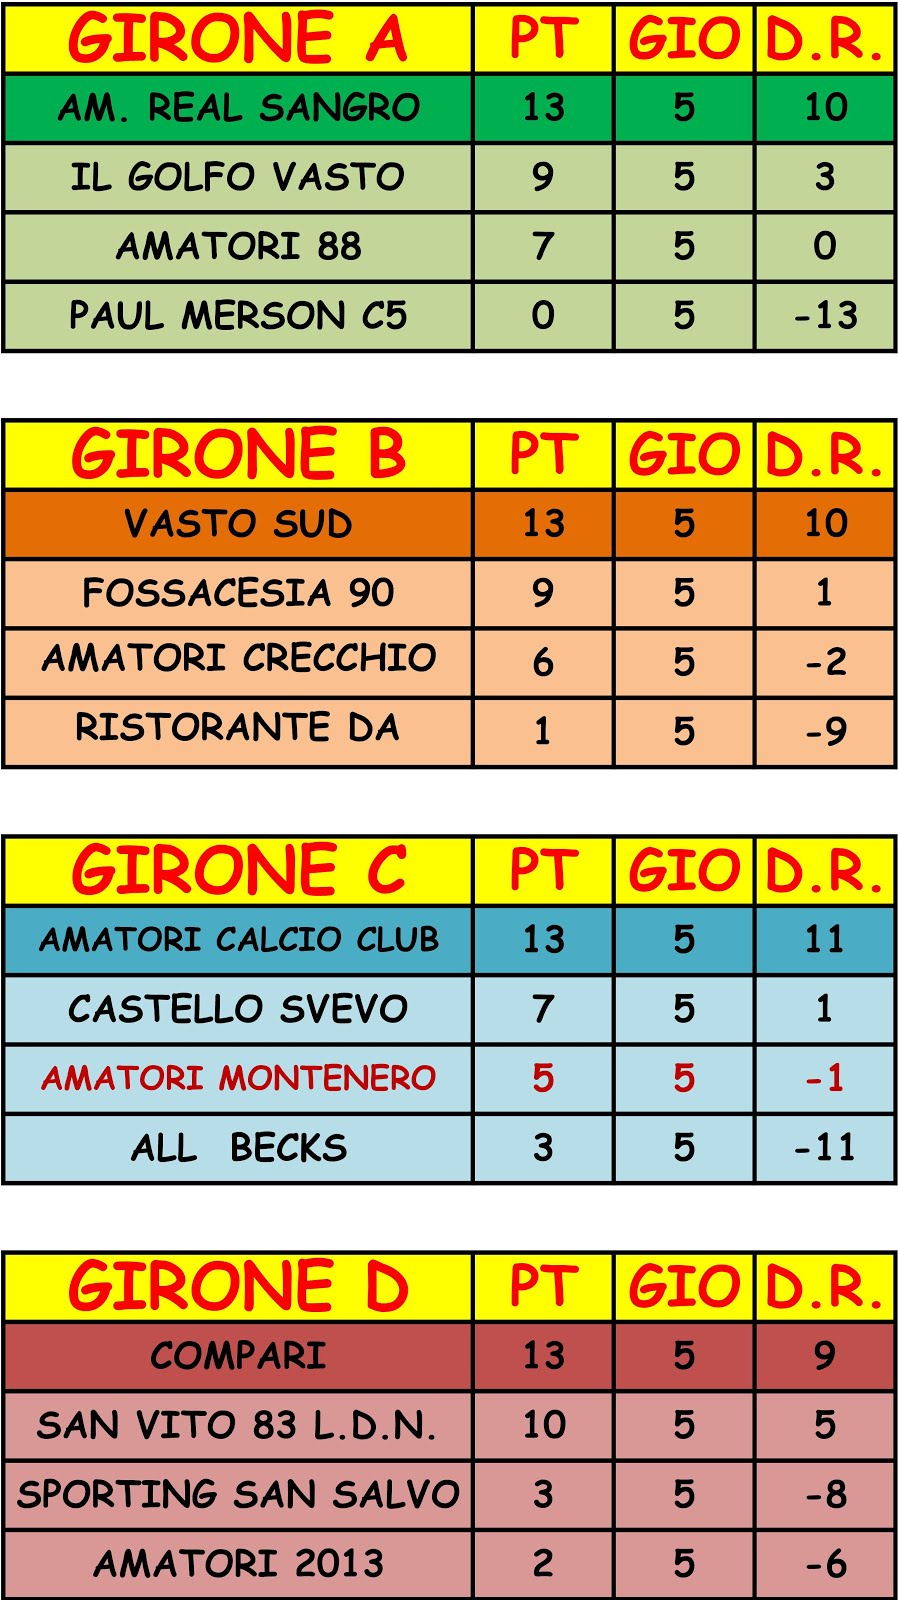 CLASSIFICHE GIRONI 2a FASE